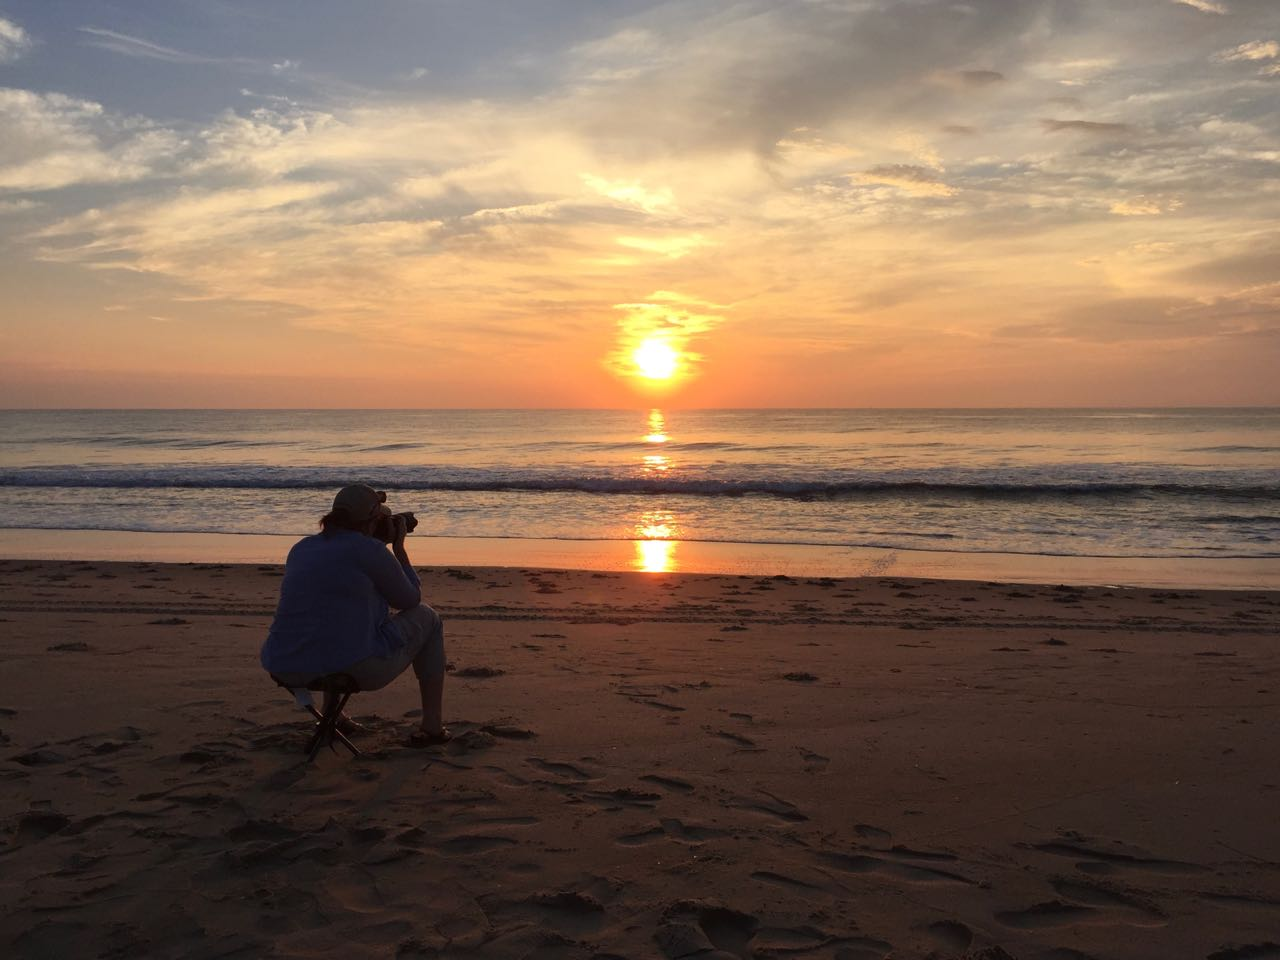 An image of a woman photographing a sunrise on the beach.